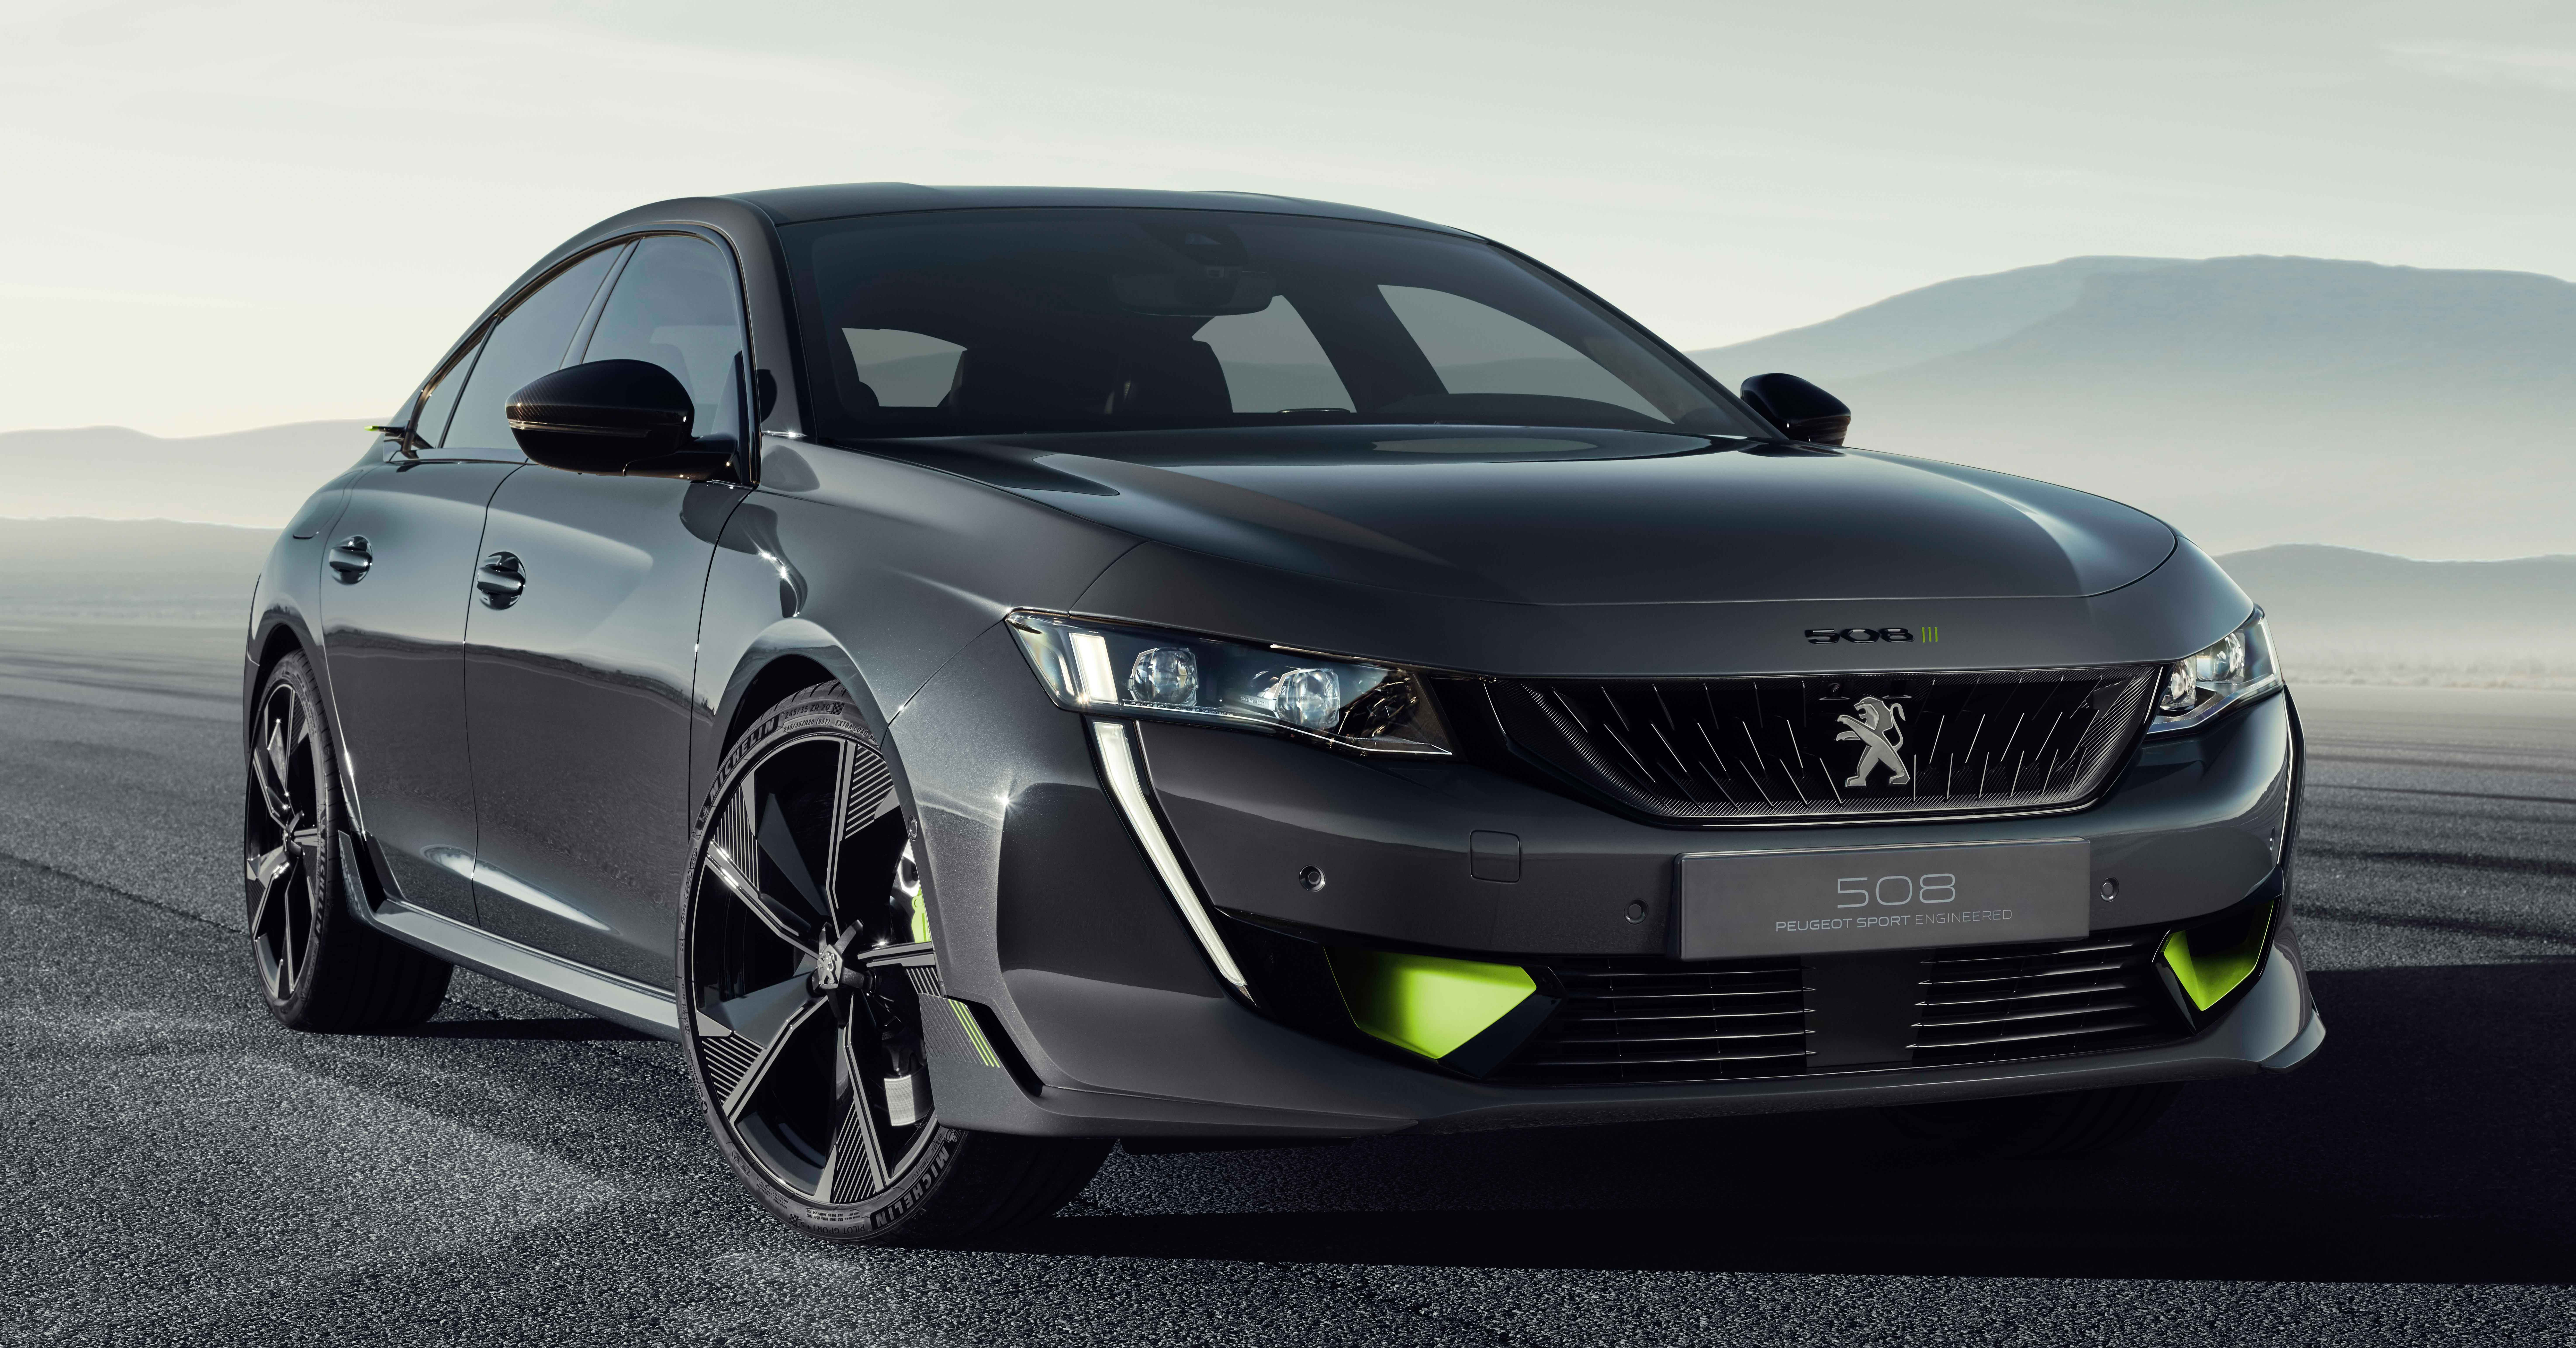 508 Peugeot Sport Engineered Concept shown ahead of Geneva debut – electric AWD, 0-100 km/h in 4.3s! Image #924345